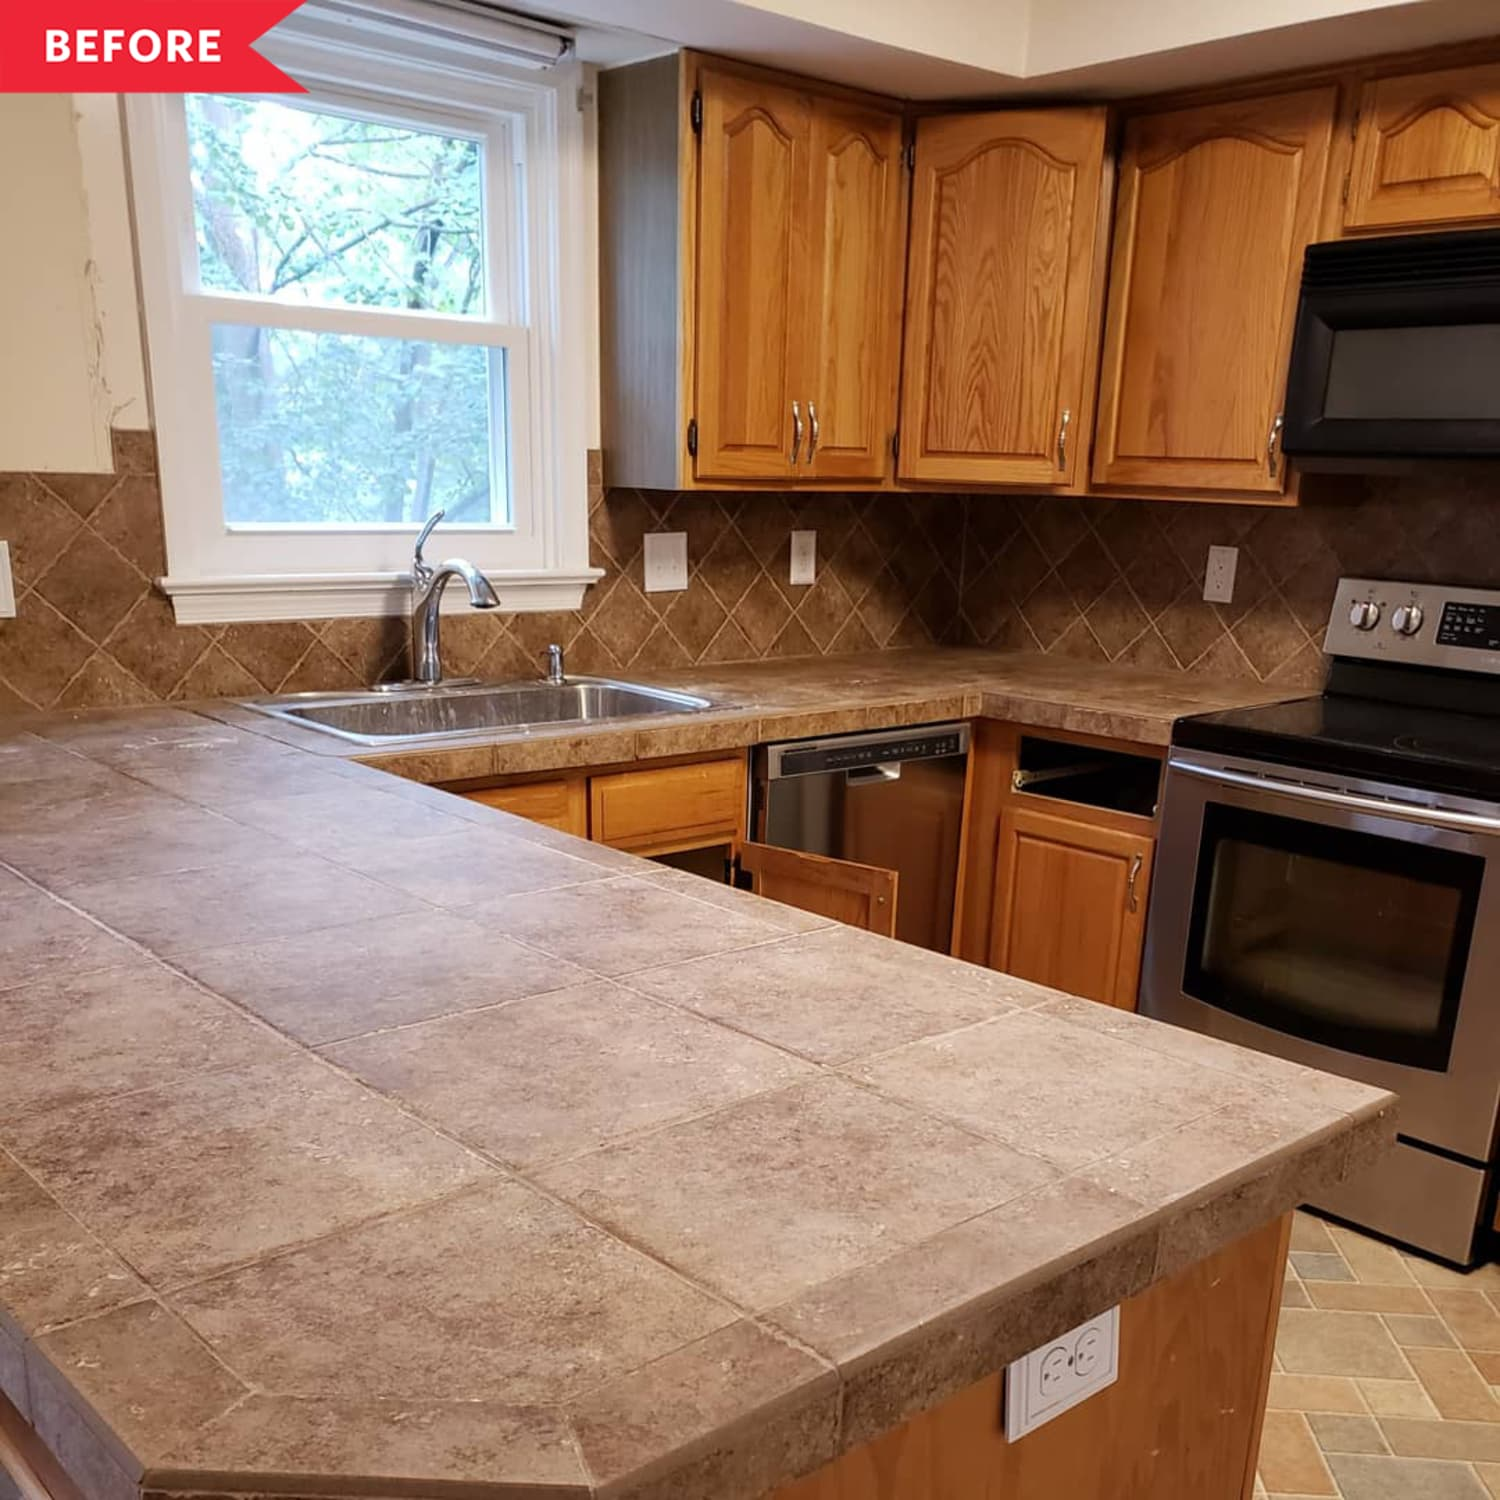 Before & After: This Kitchen Layout Stayed the Same Size, but the Room Now Looks Twice as Big